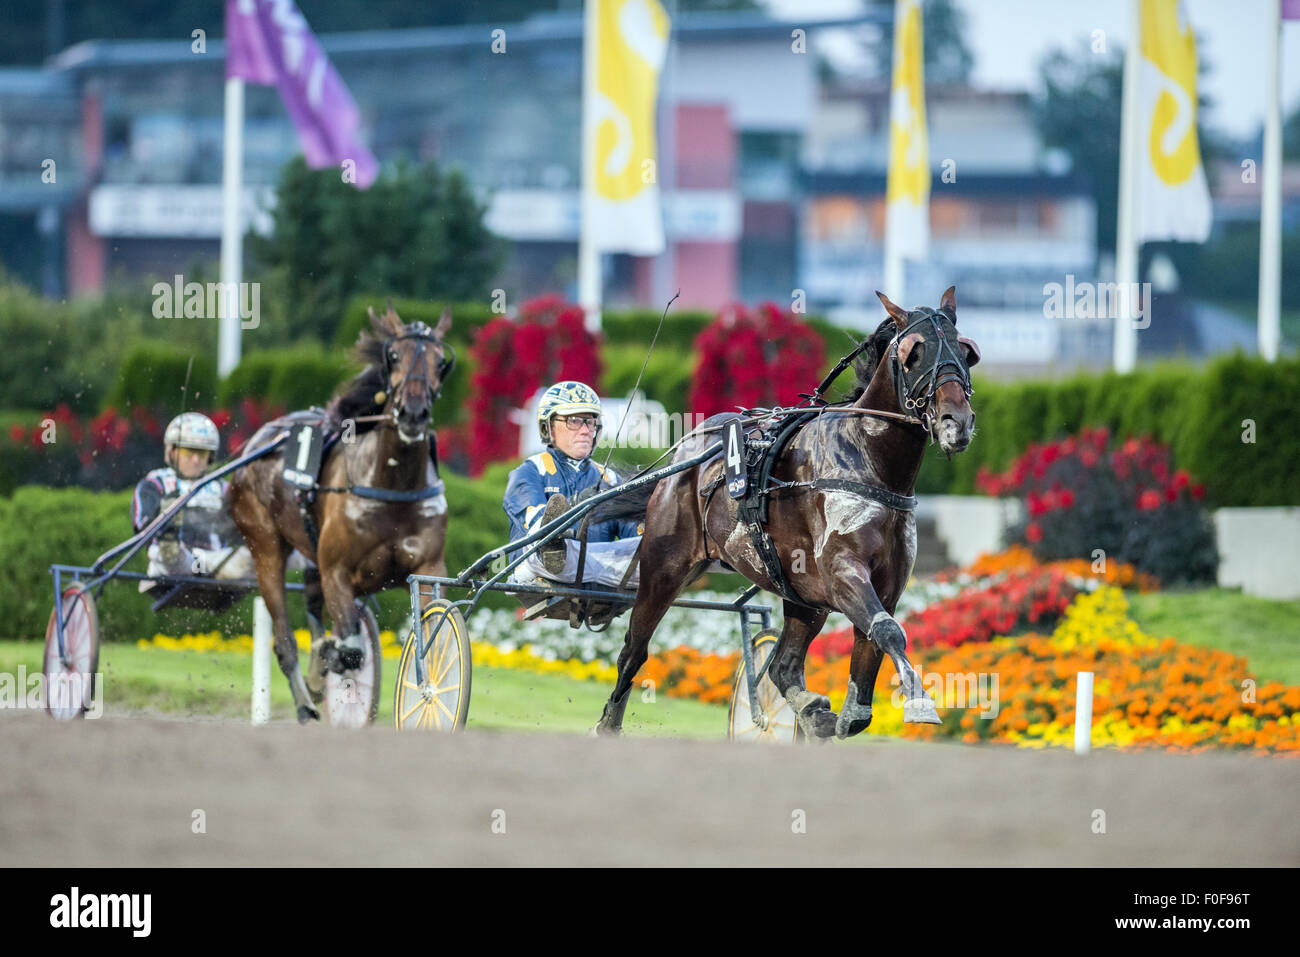 Angle of Attack with Stefan Melander wins V86 race #4 at Solvalla horse racing track on August 5, 2015 - Stock Image